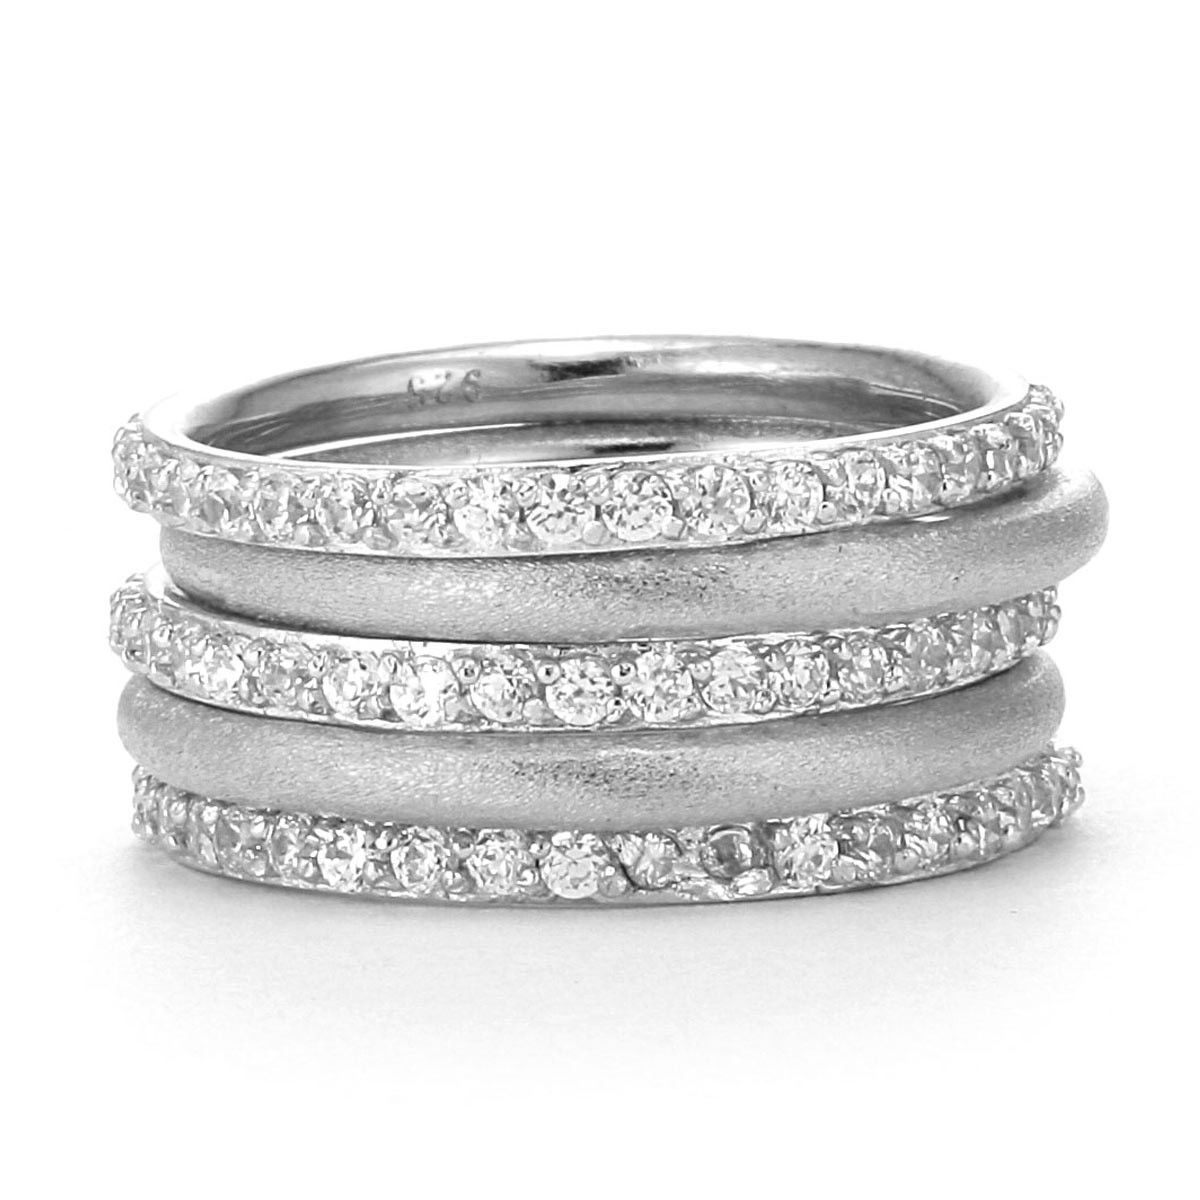 Susanb Designs Simulated Diamond Stackable Bands Set Of 5